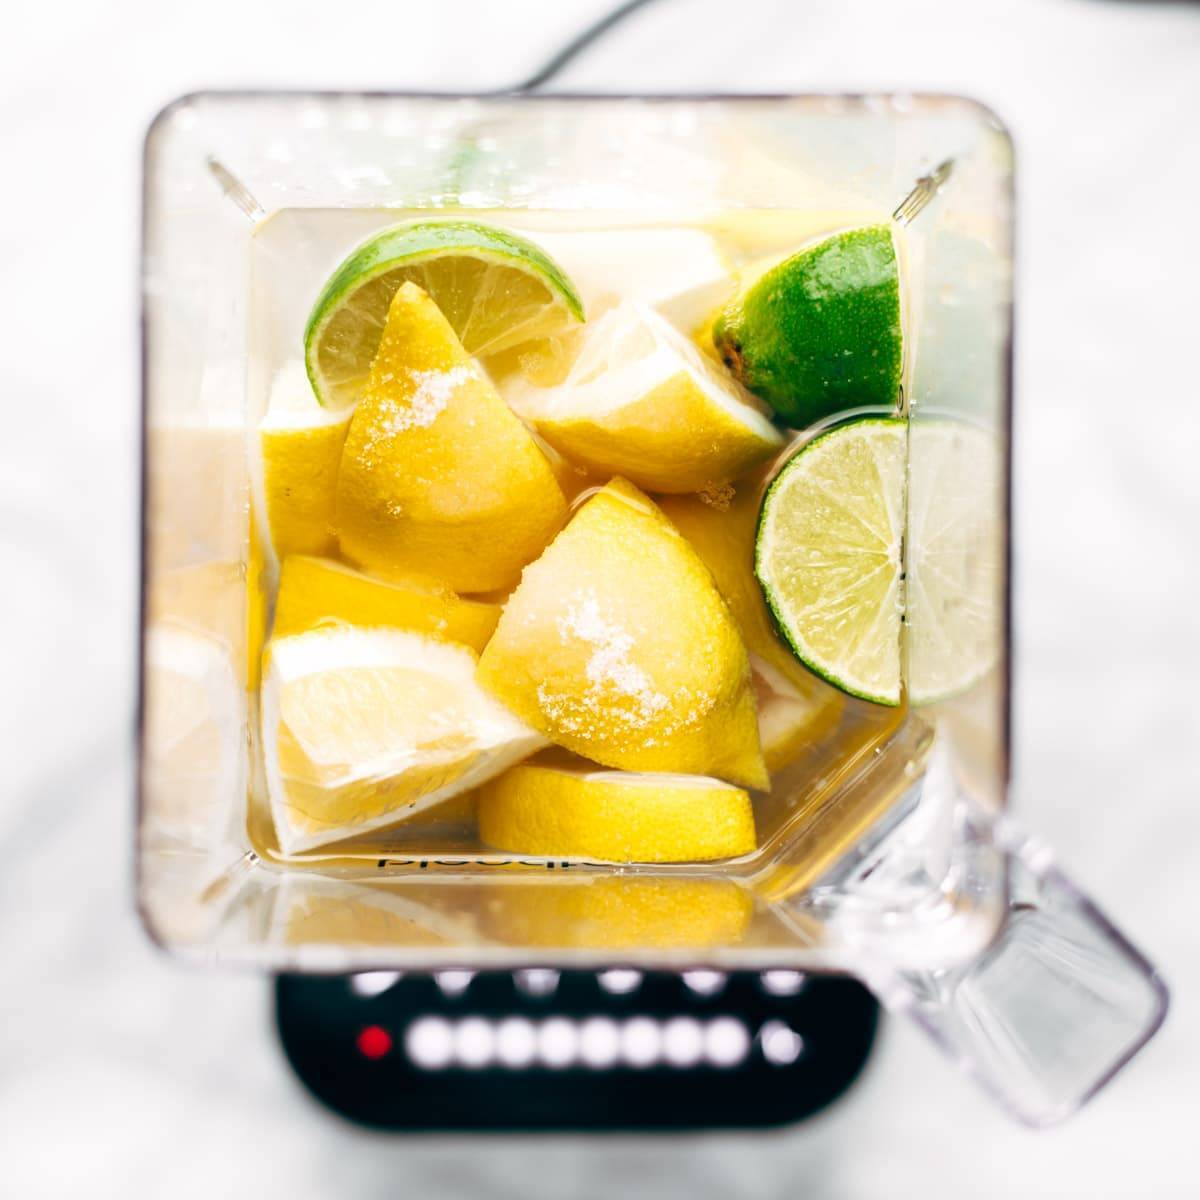 Blender filled with lemons and limes.